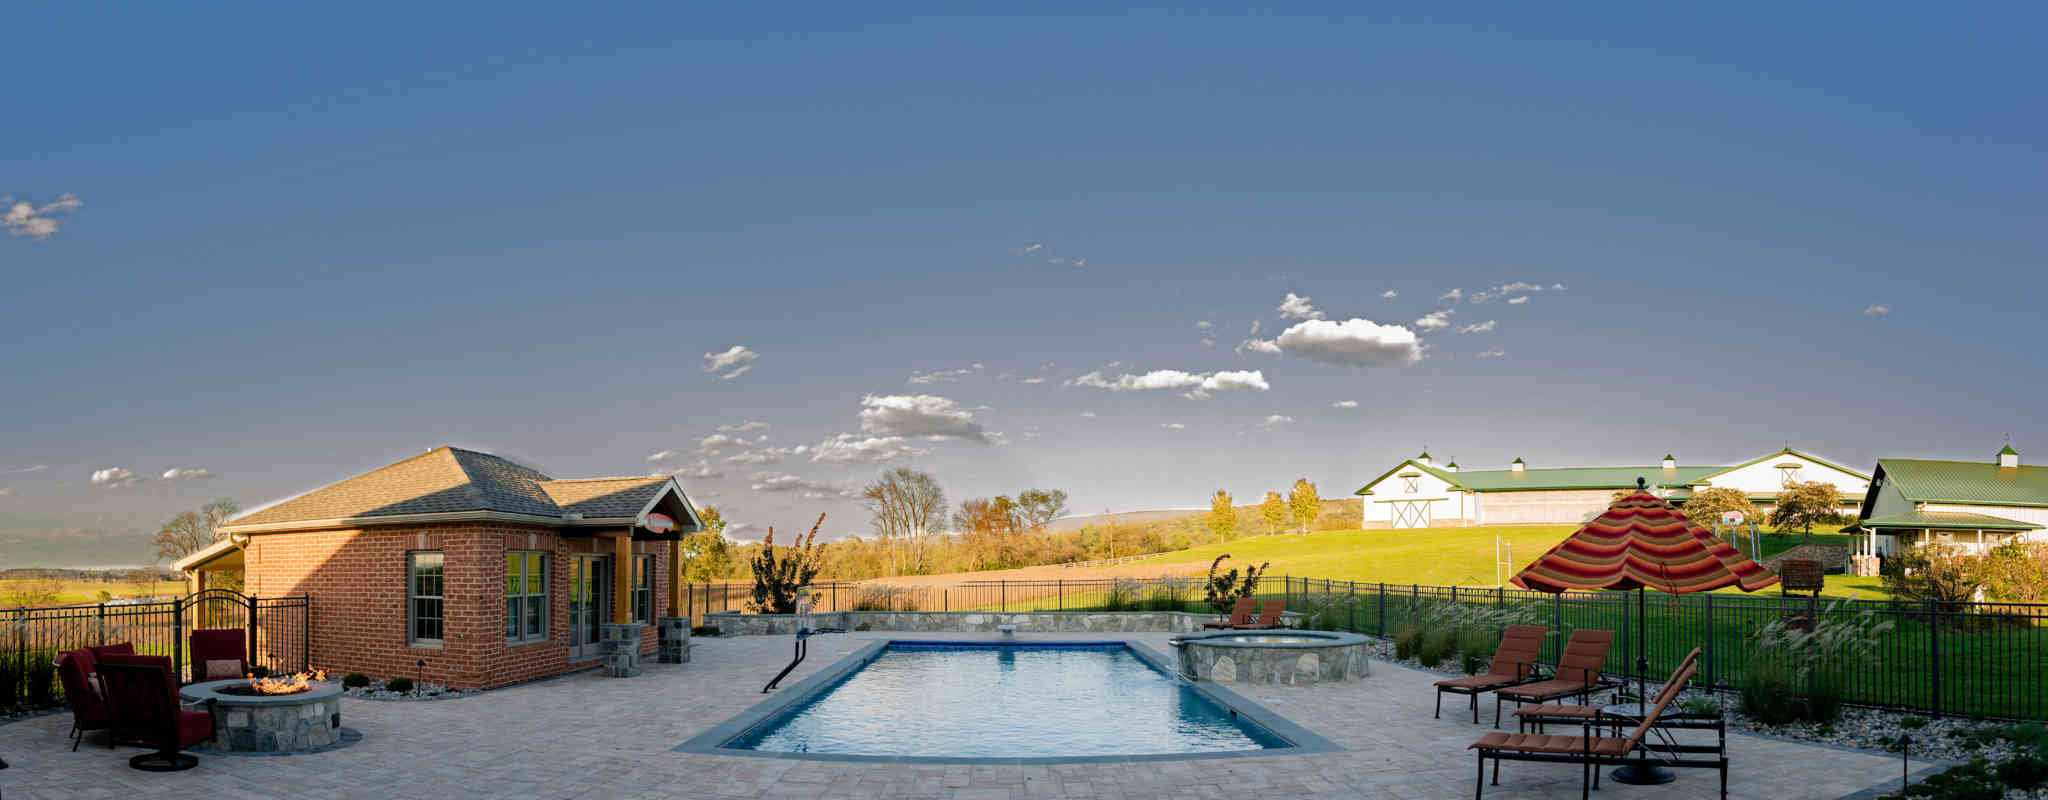 Howard Montgomery Baltimore County Swimming Pool, Construction, Landscaping Contractor in Sykesville, MD Rhine